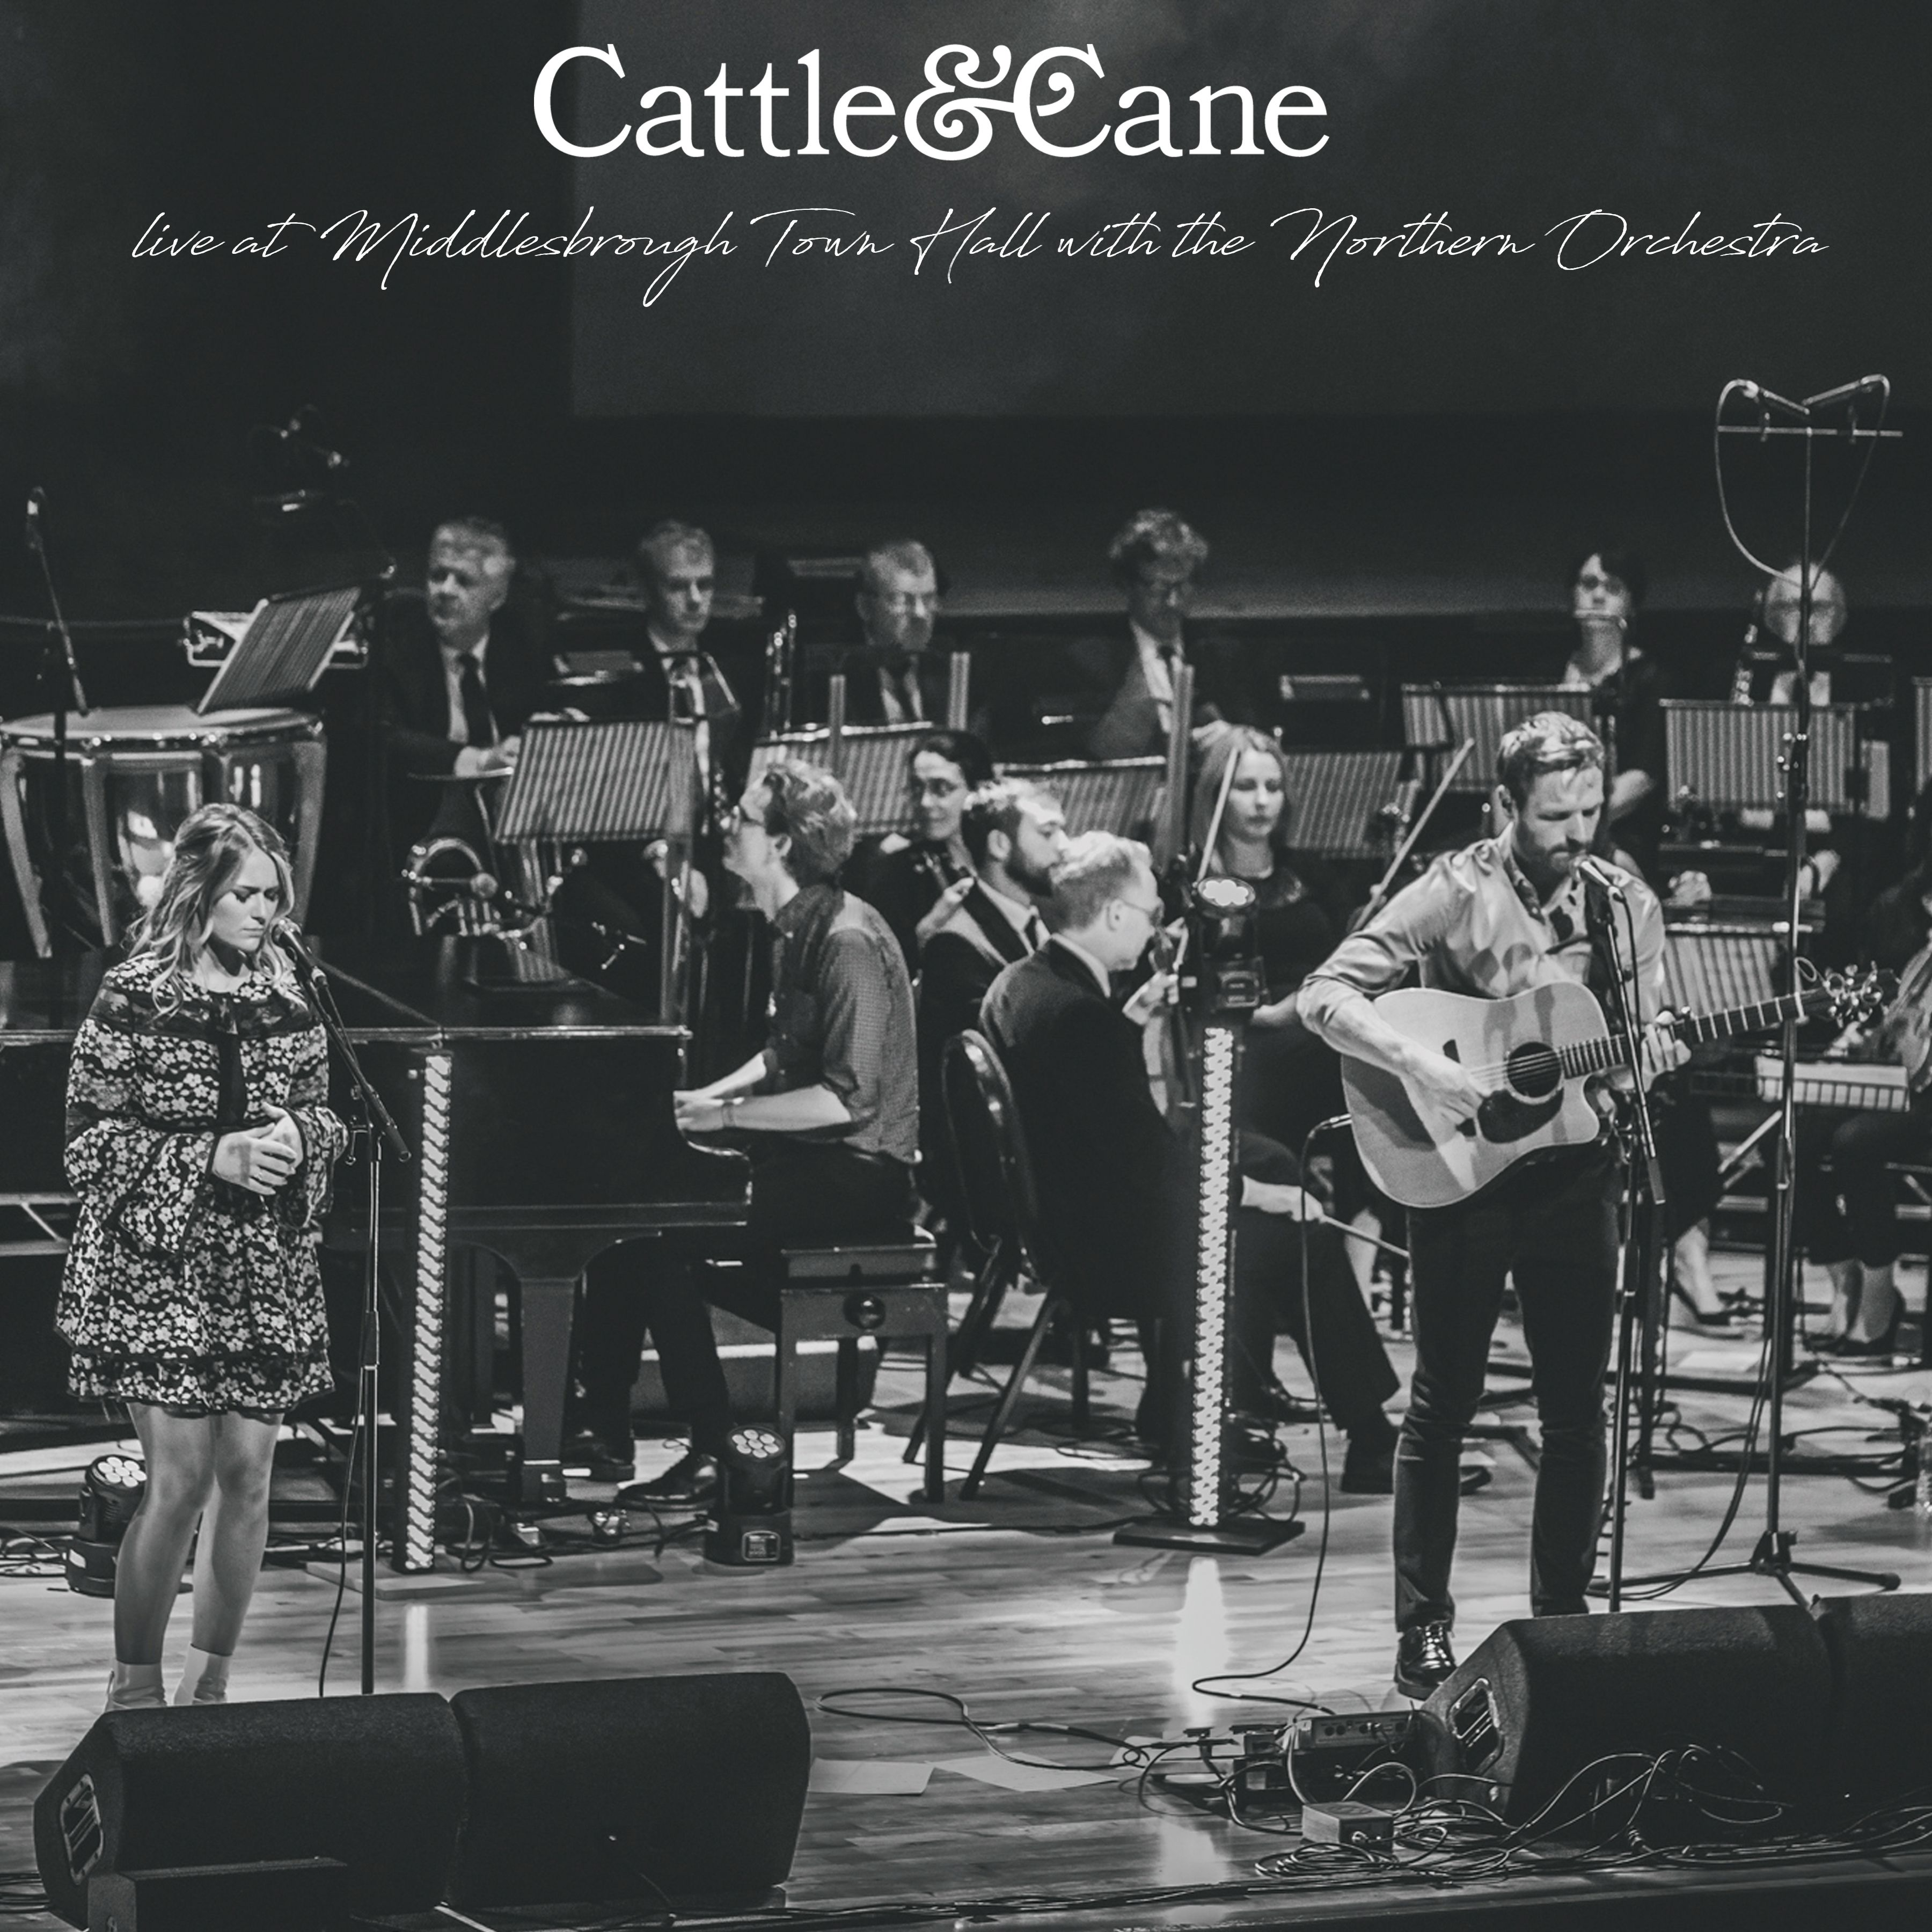 birdsong - by - cattle & cane - UK - indie music - indie rock - indie folk - new music - music blog - indie blog - wolf in a suit - wolfinasuit - wolf in a suit blog - wolf in a suit music blog